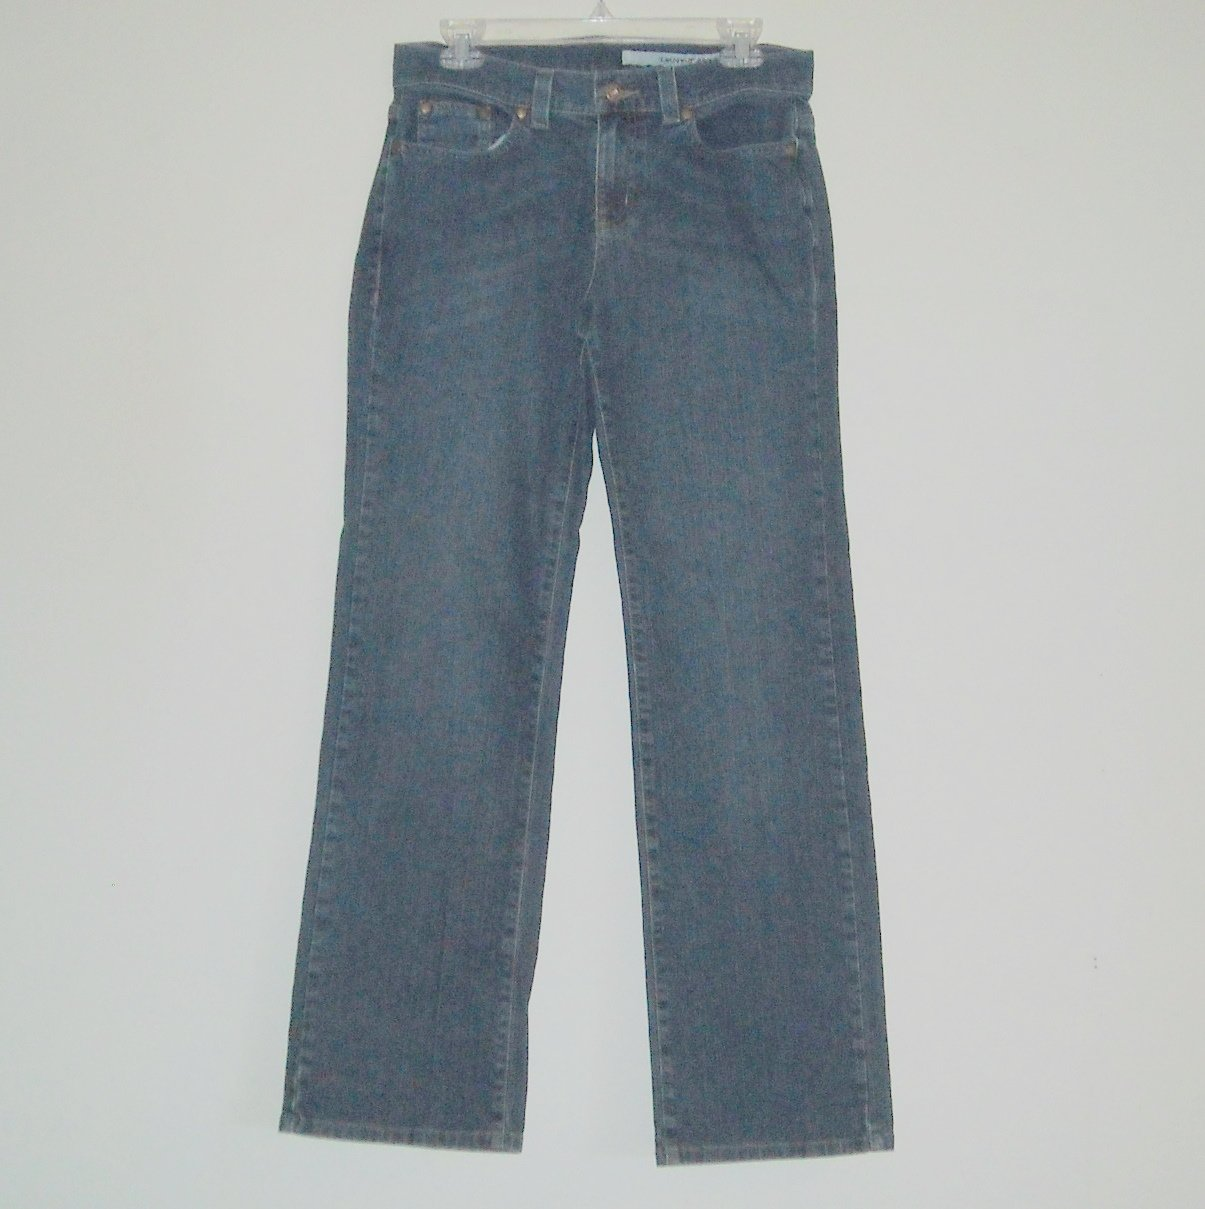 DKNY Jeans womens blue East Village jeans pants size 8